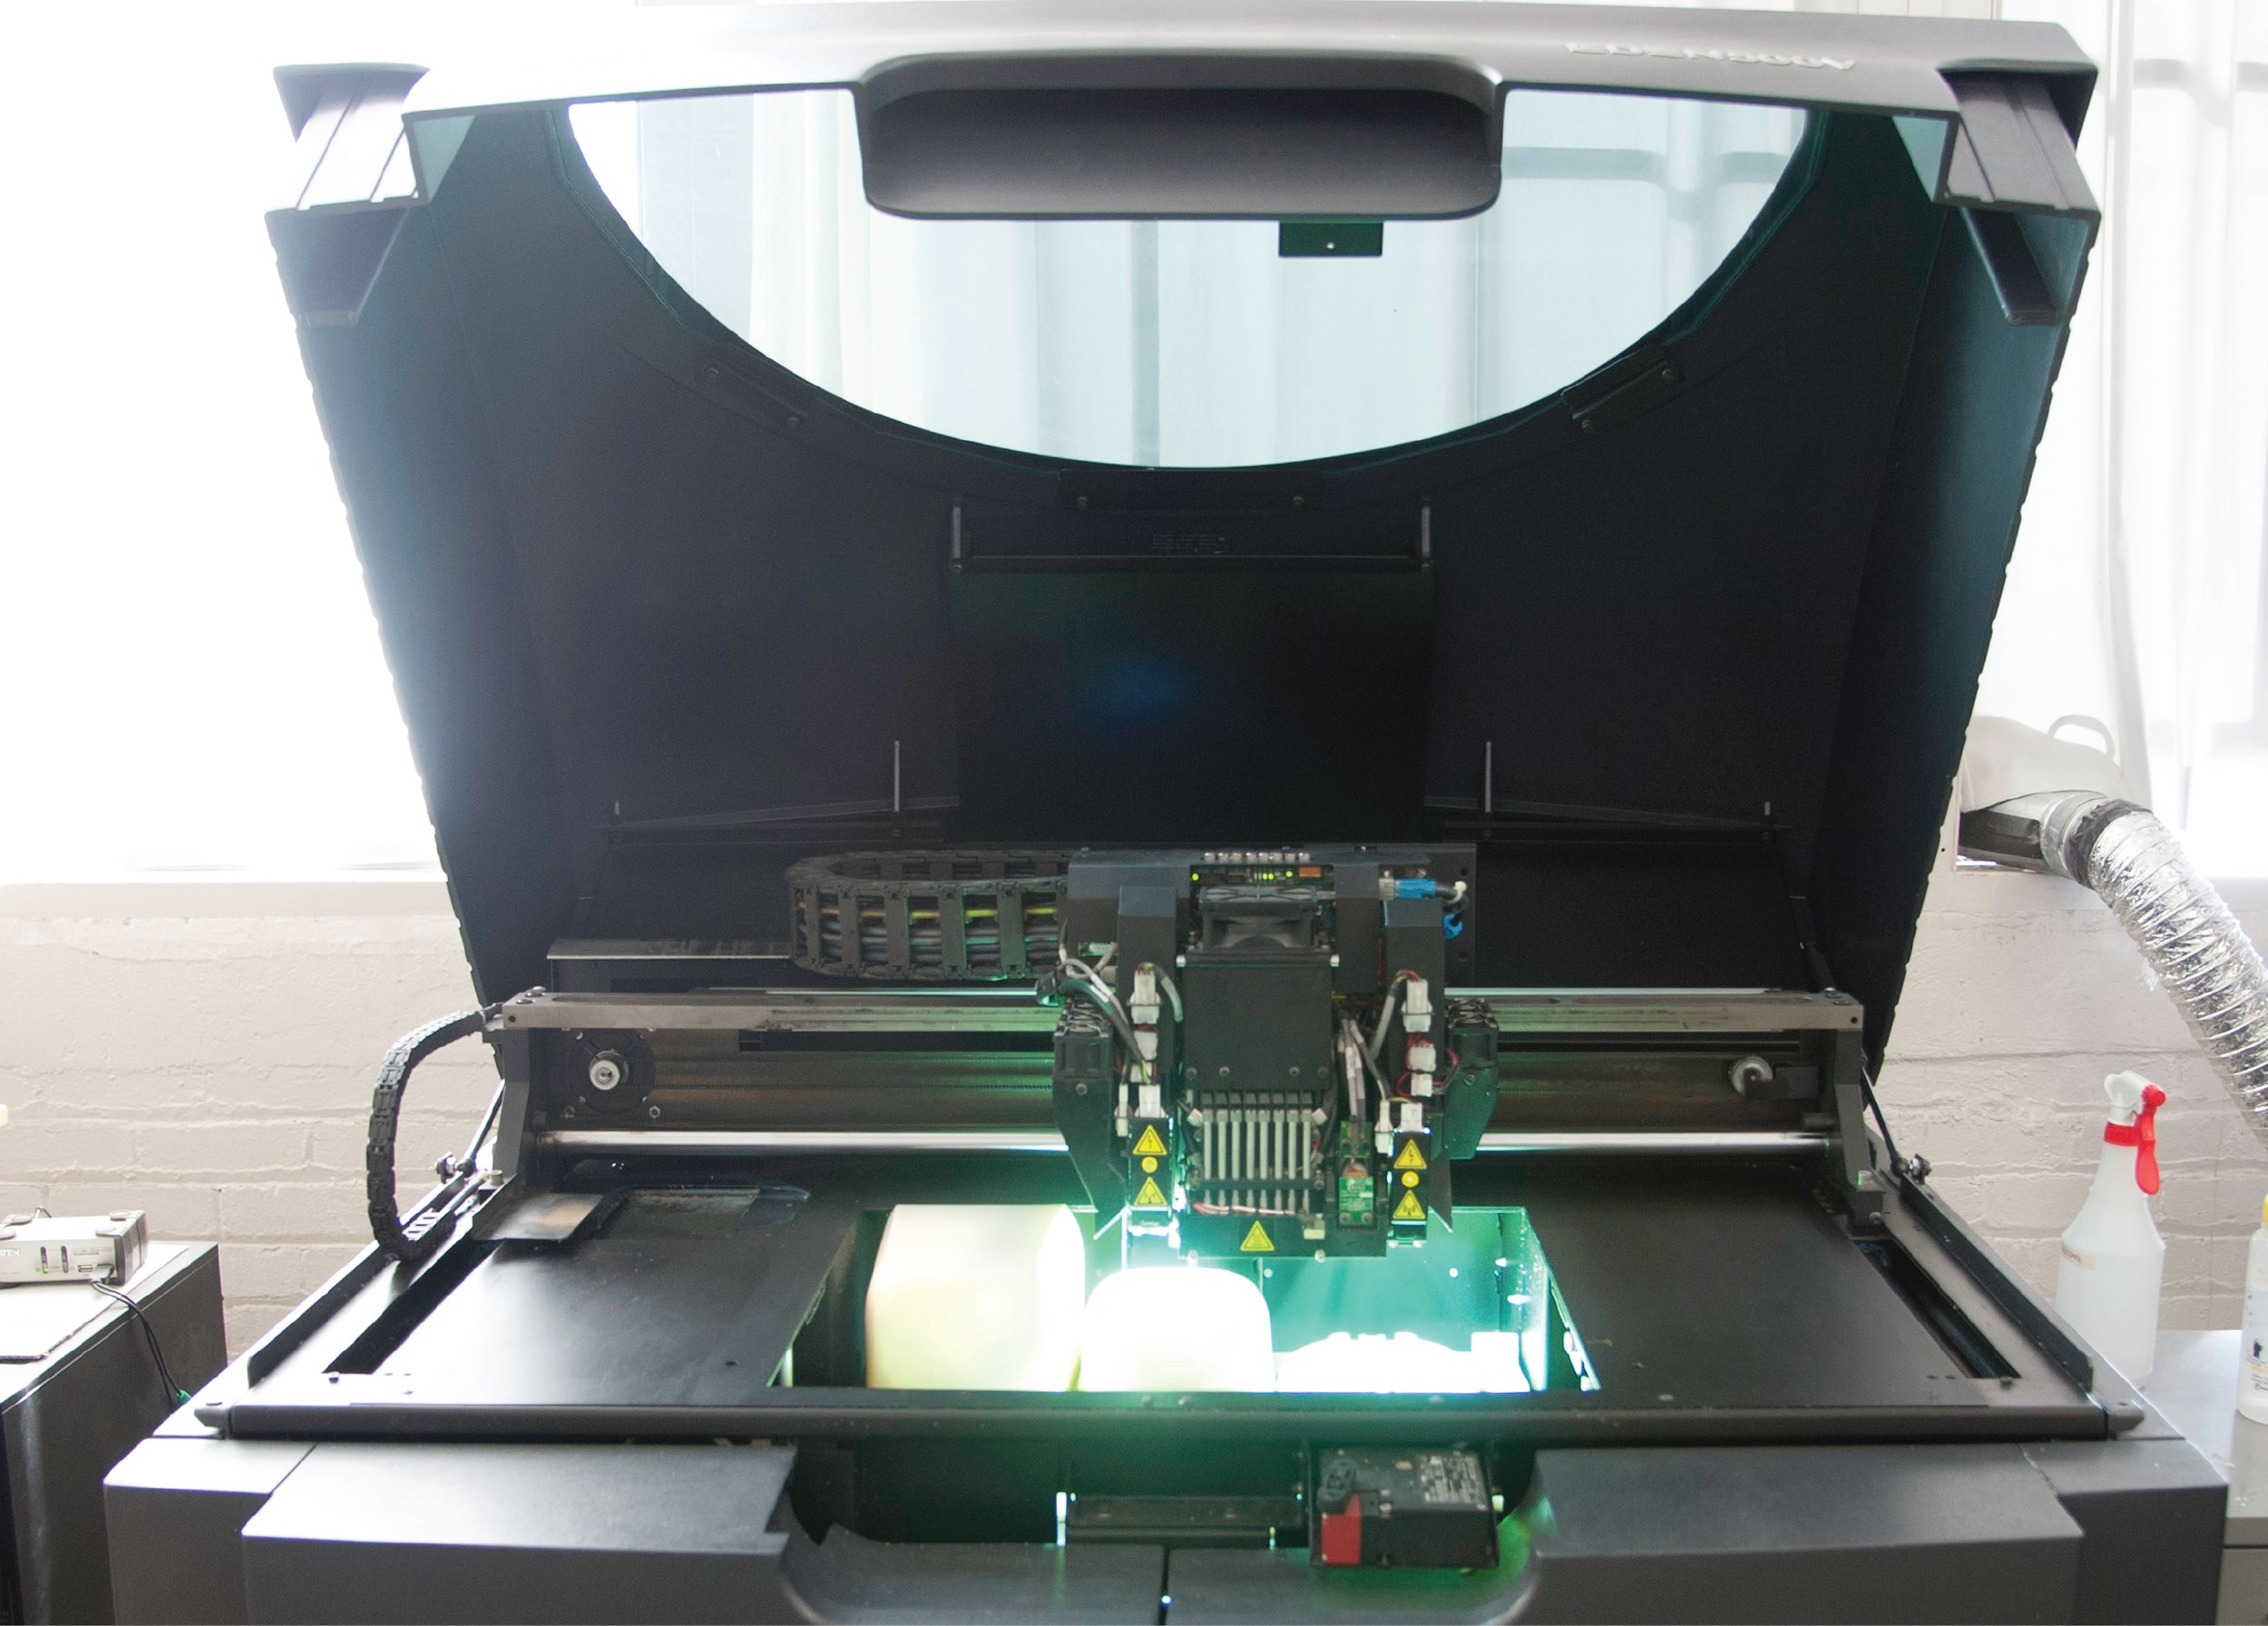 Professional-grade 3D printing machine 3D printing service